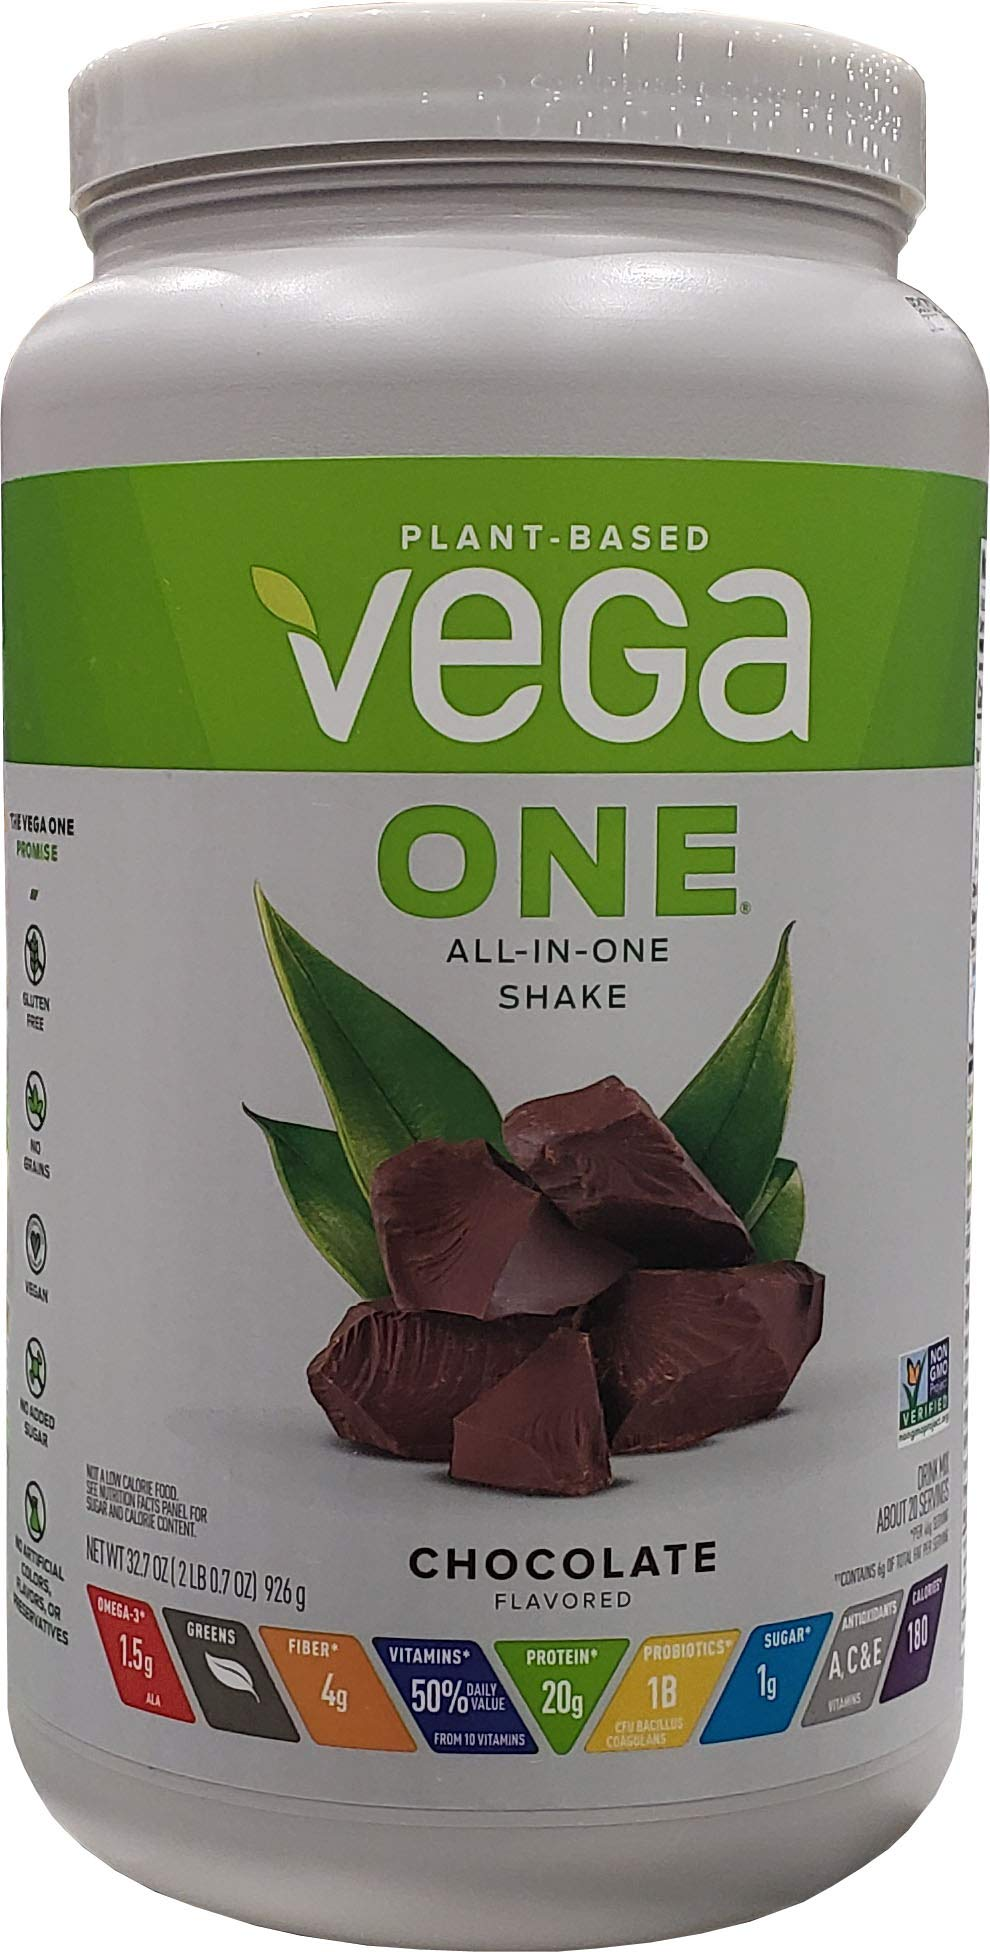 Vega One All-In-One Shake Plant Based Chocolate Mix Vegan 20 Servings 32.7 OZ